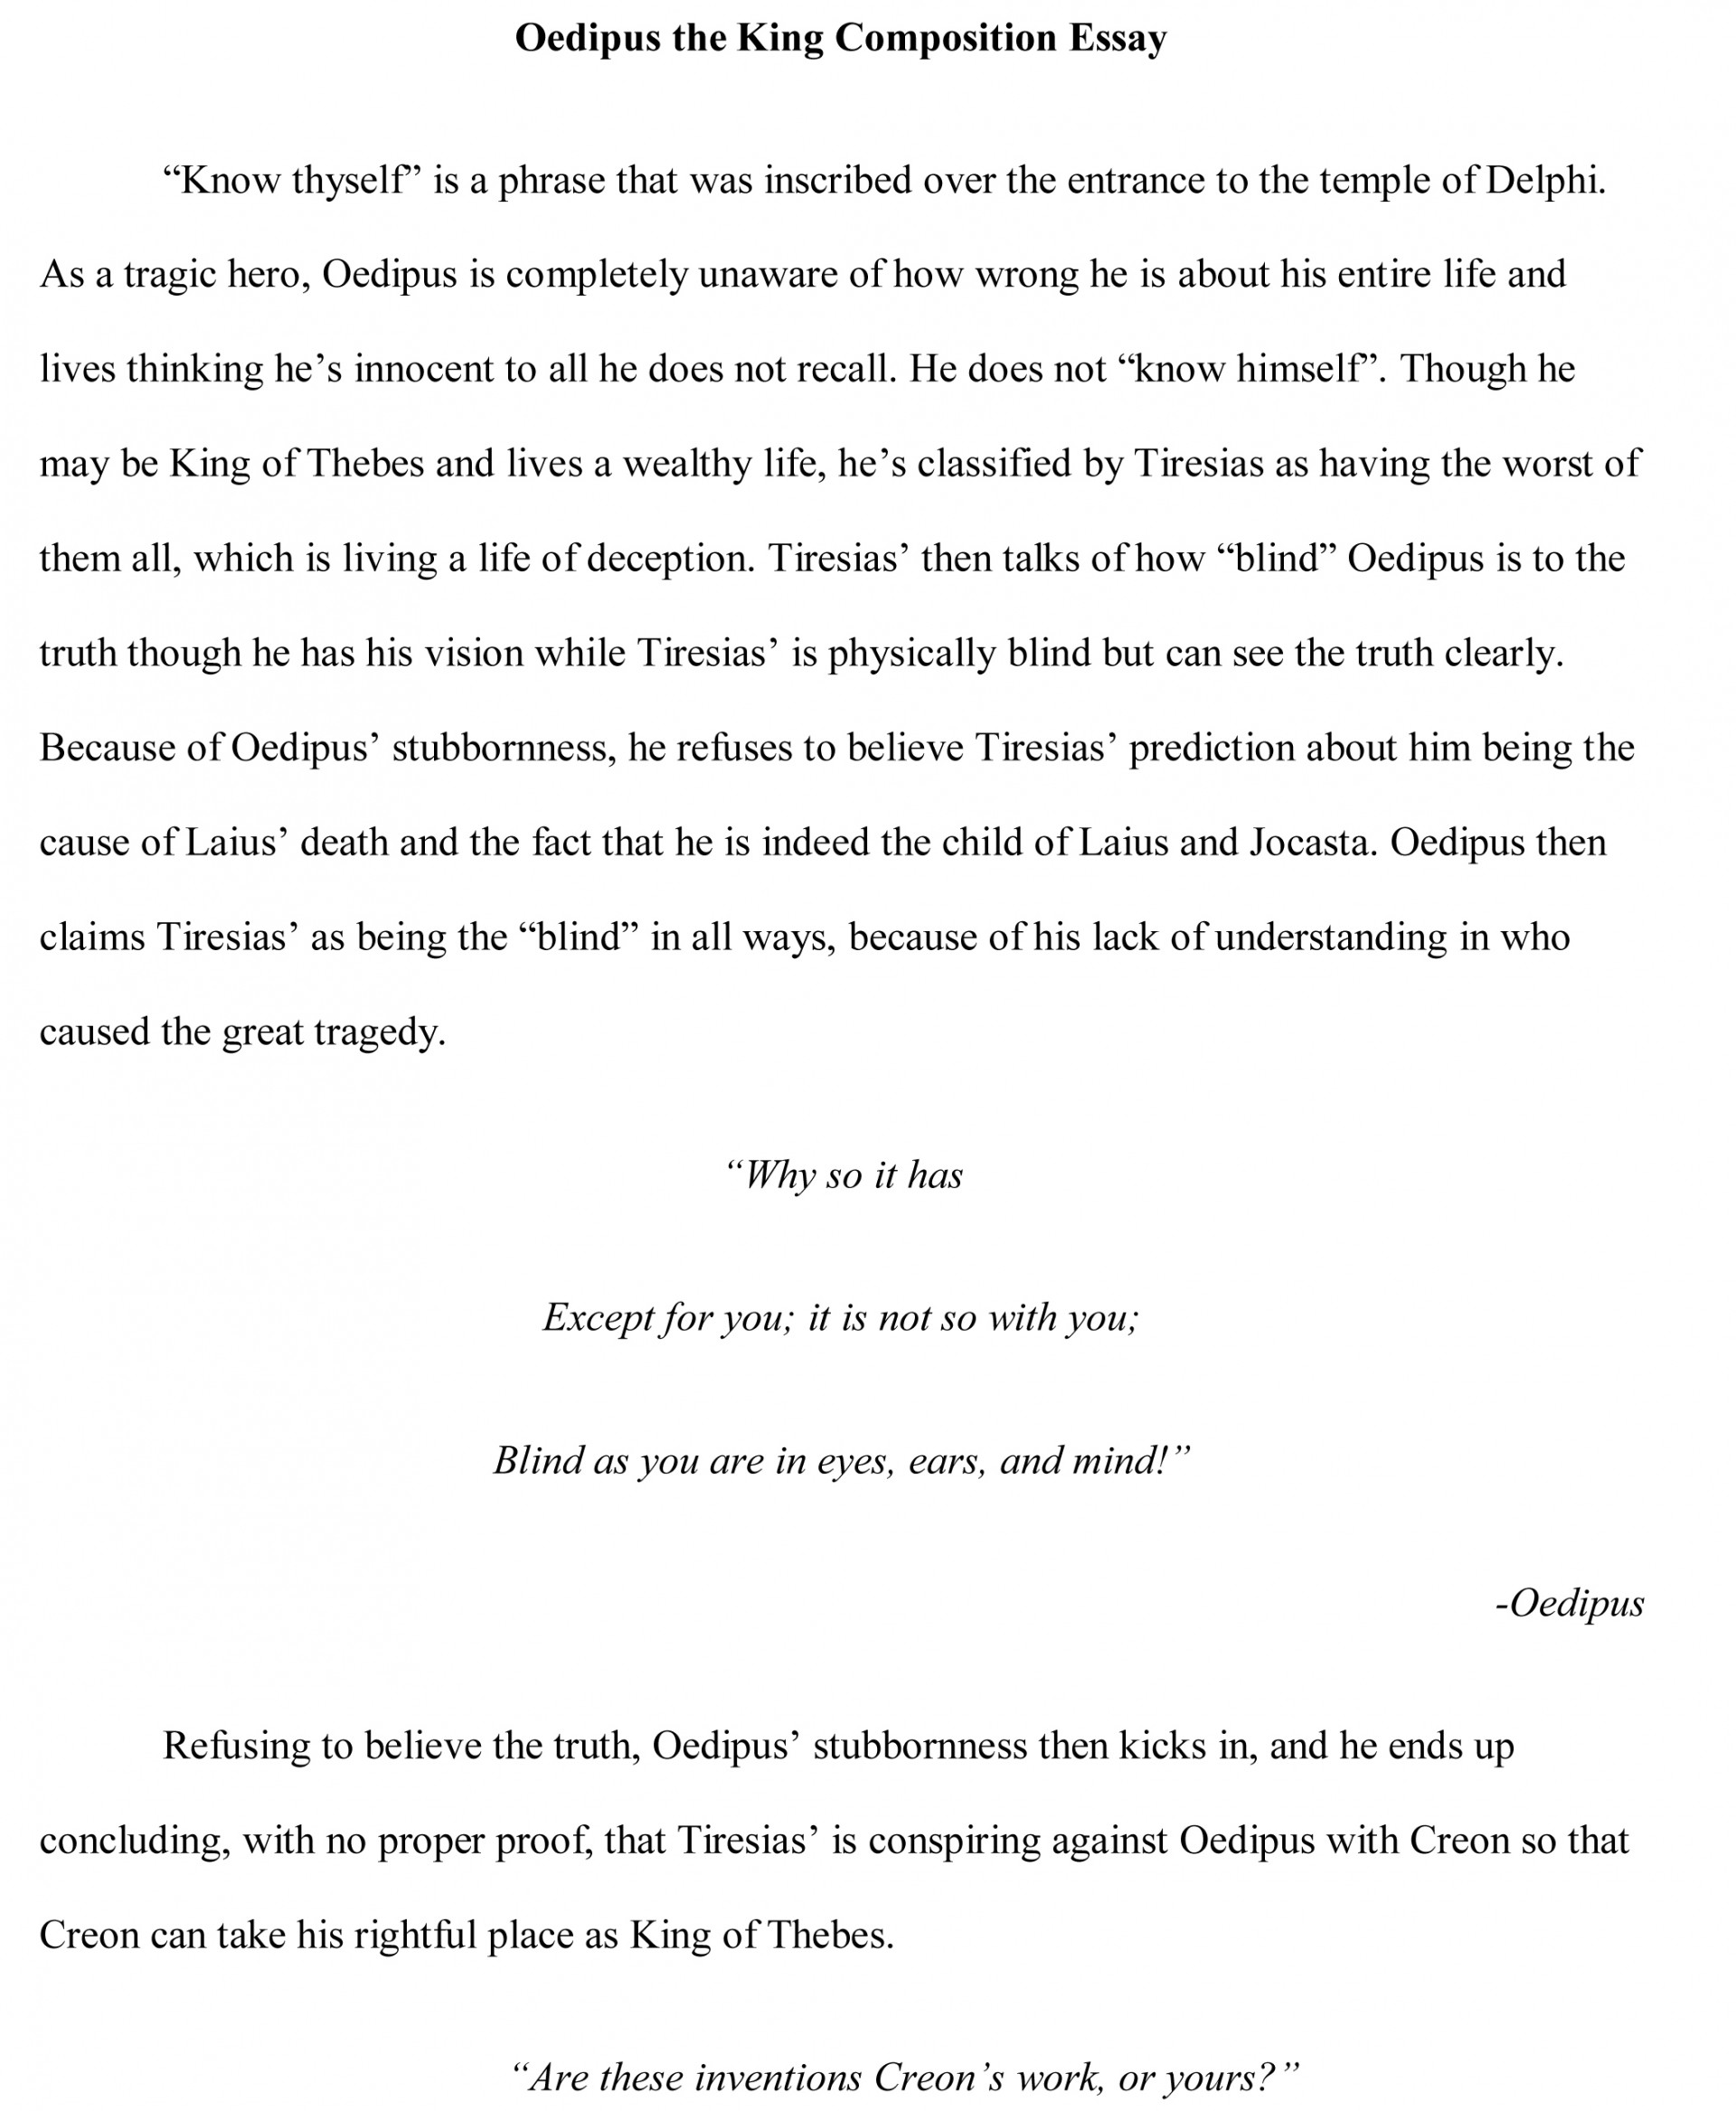 005 Oedipus Essay Free Sample Topics For An Unbelievable Interesting Expository 1920